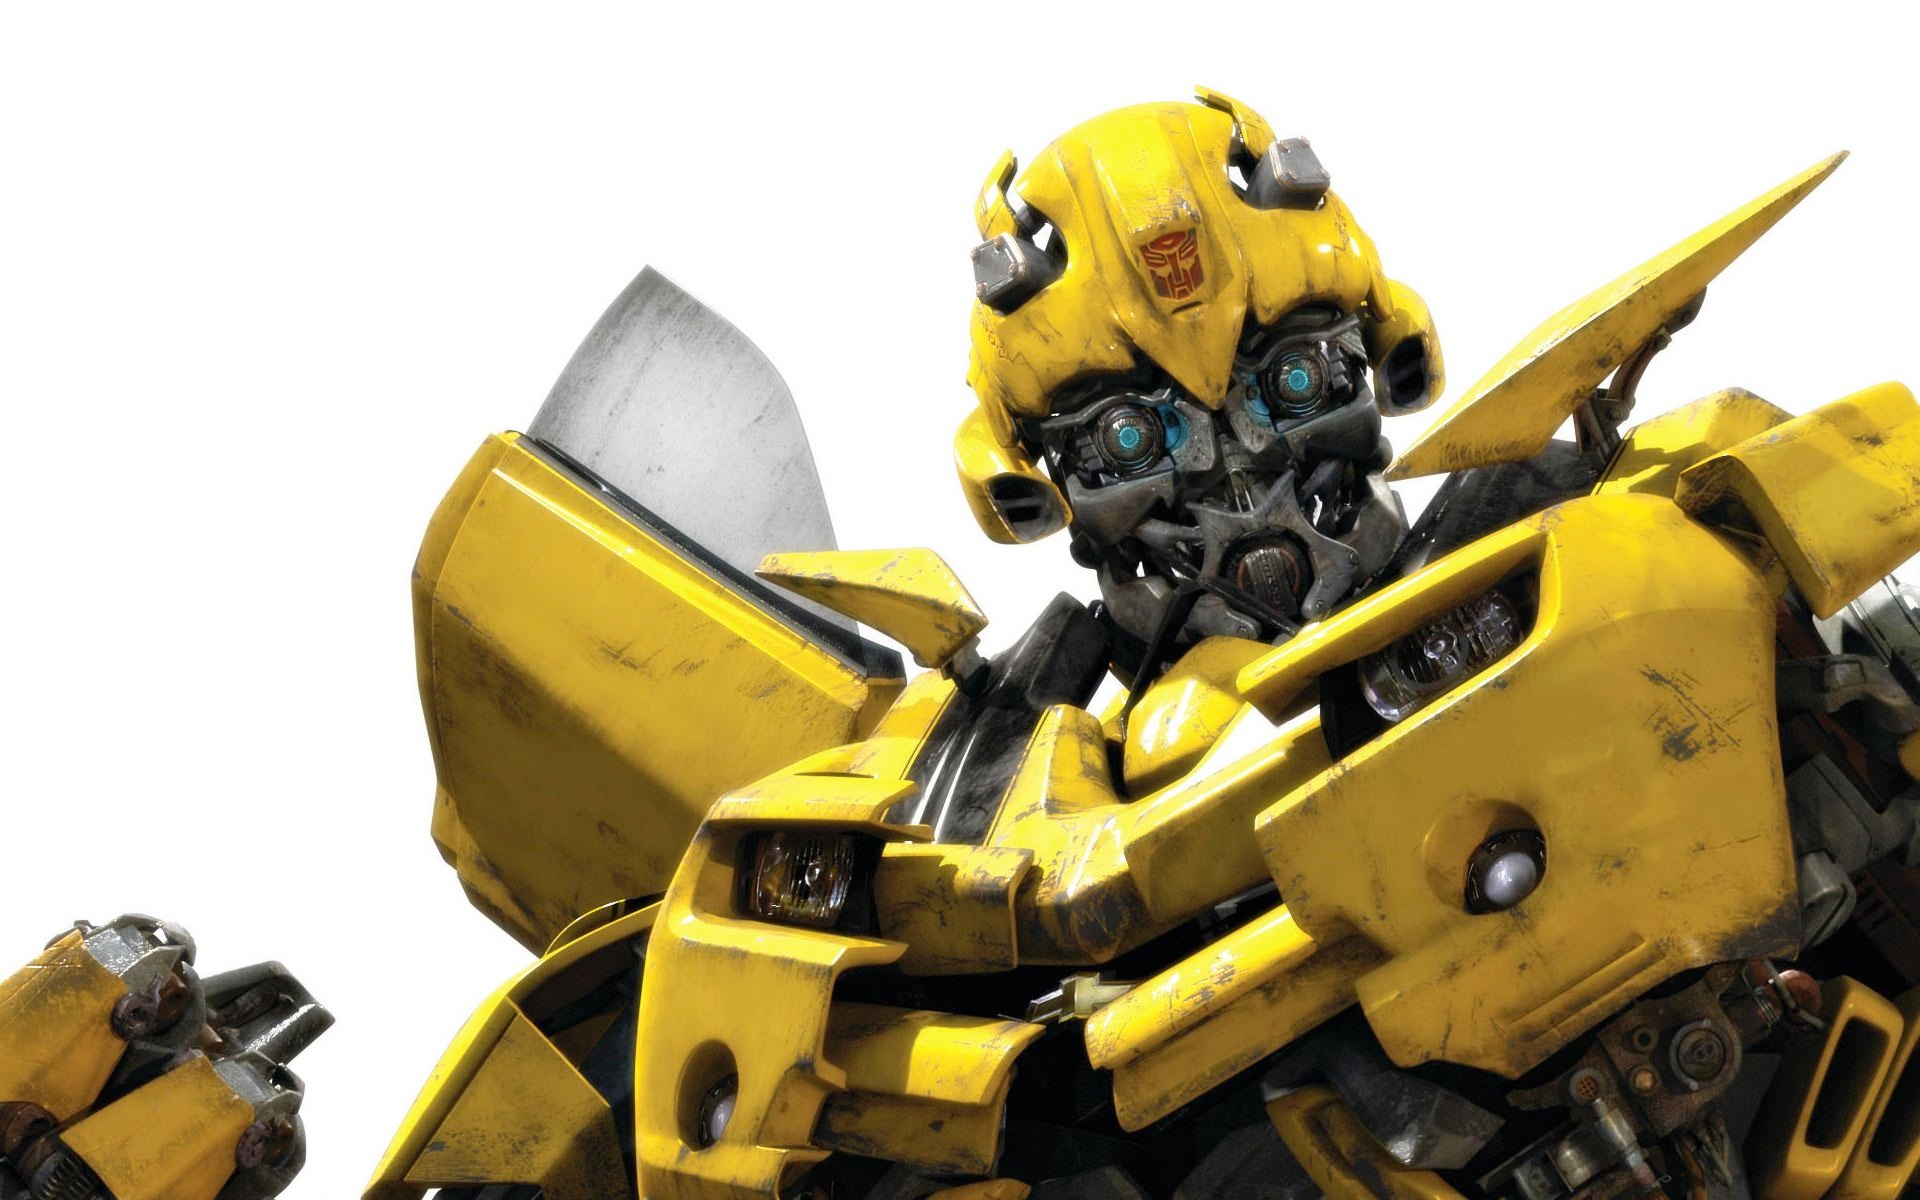 Bumble Bee 699.32 Kb